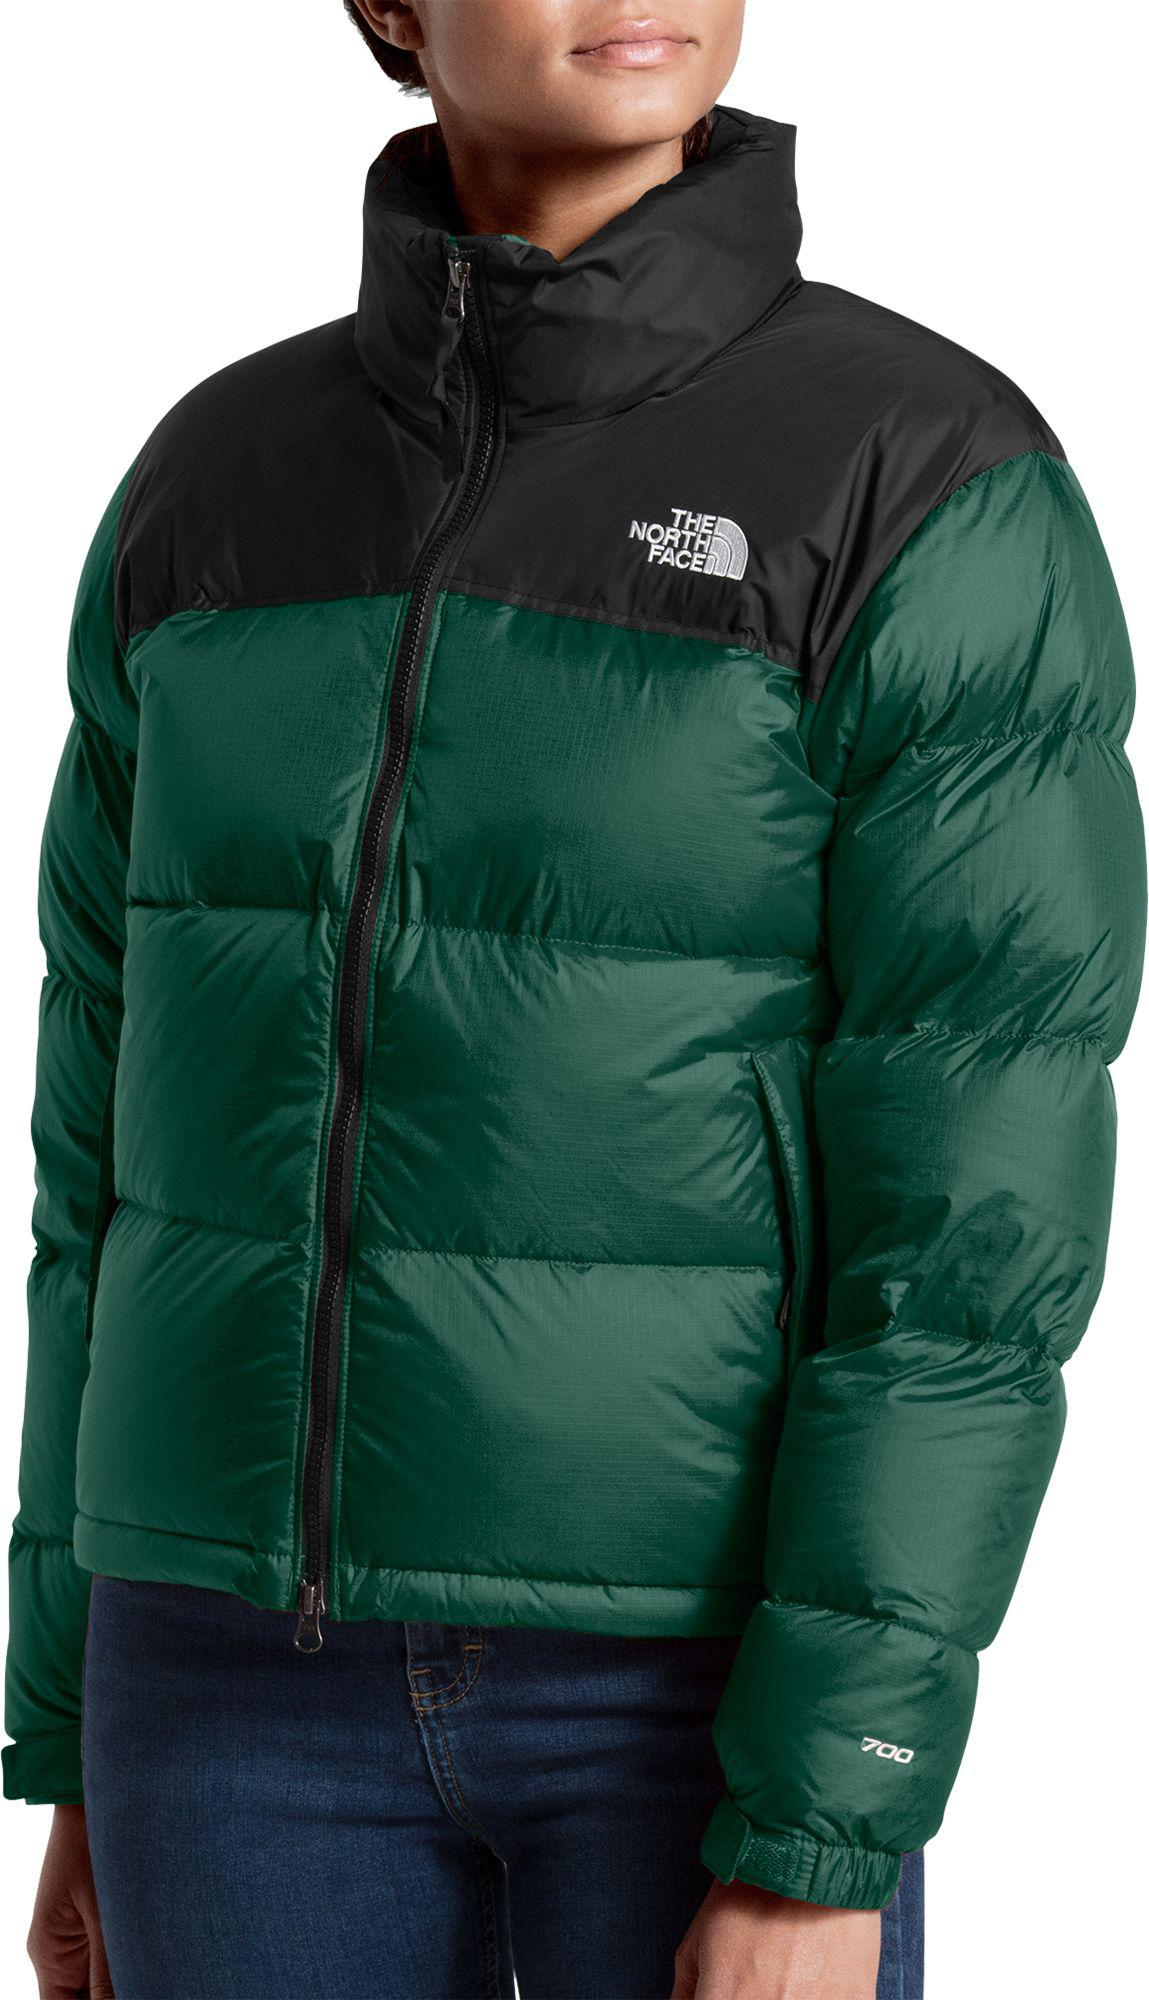 Lyst - The North Face 1996 Retro Nuptse Jacket in Green d96e0fb07